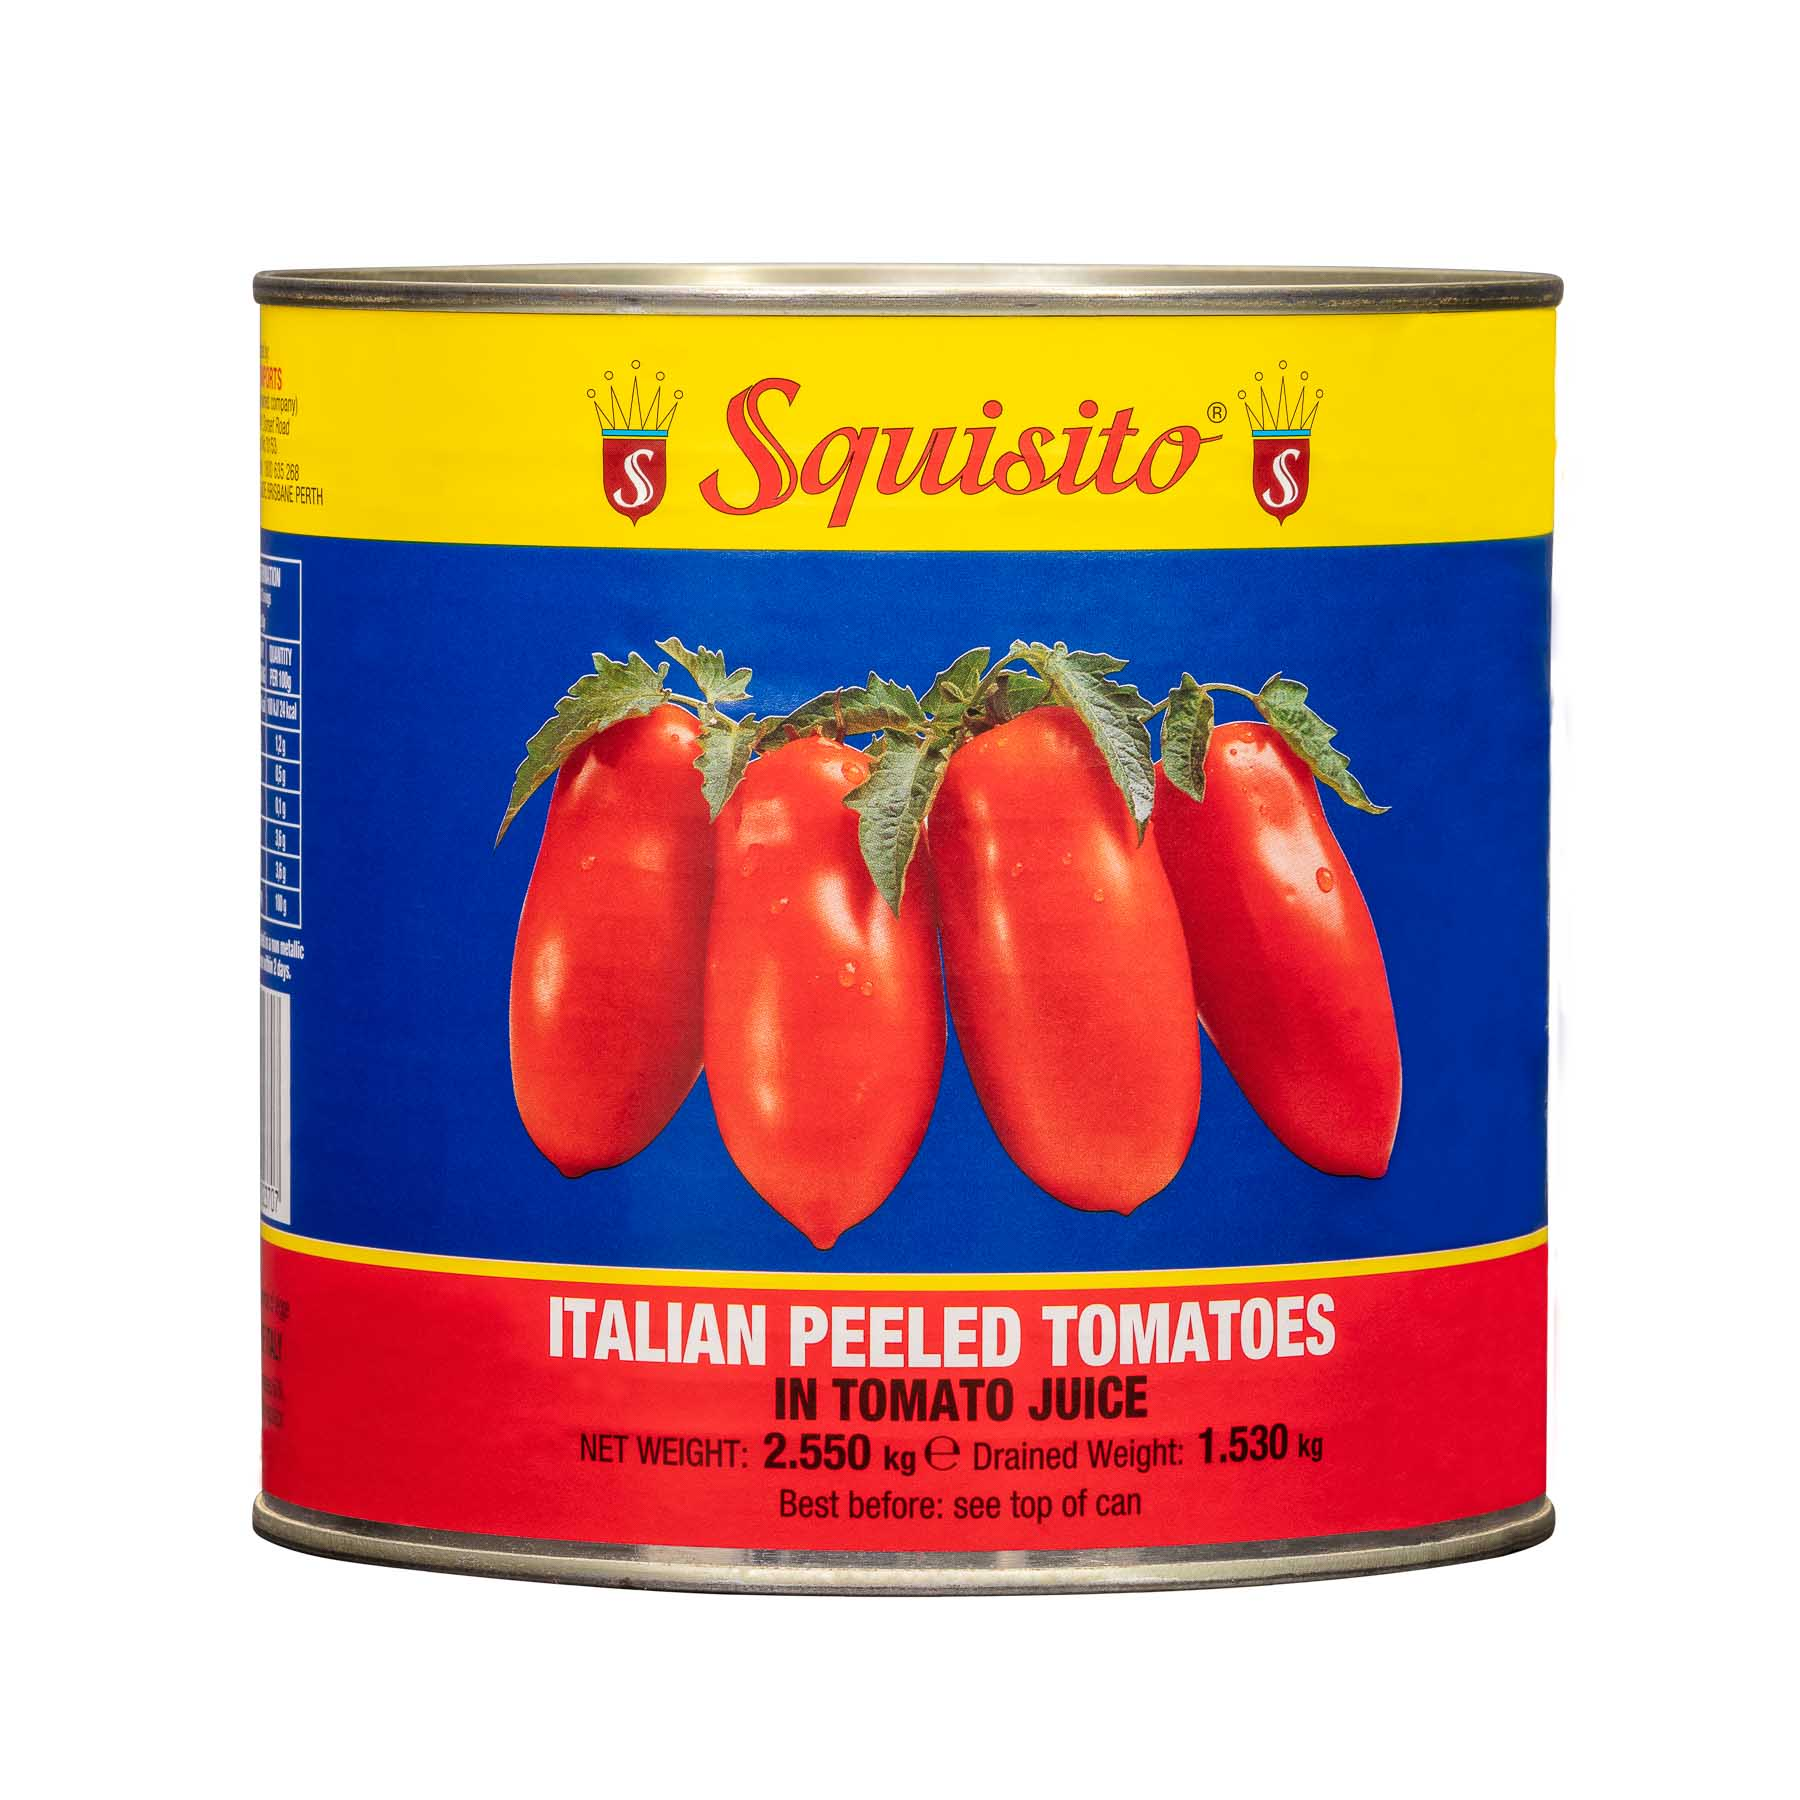 Large can Italian Pelled Tomatoes - Product Photography sample